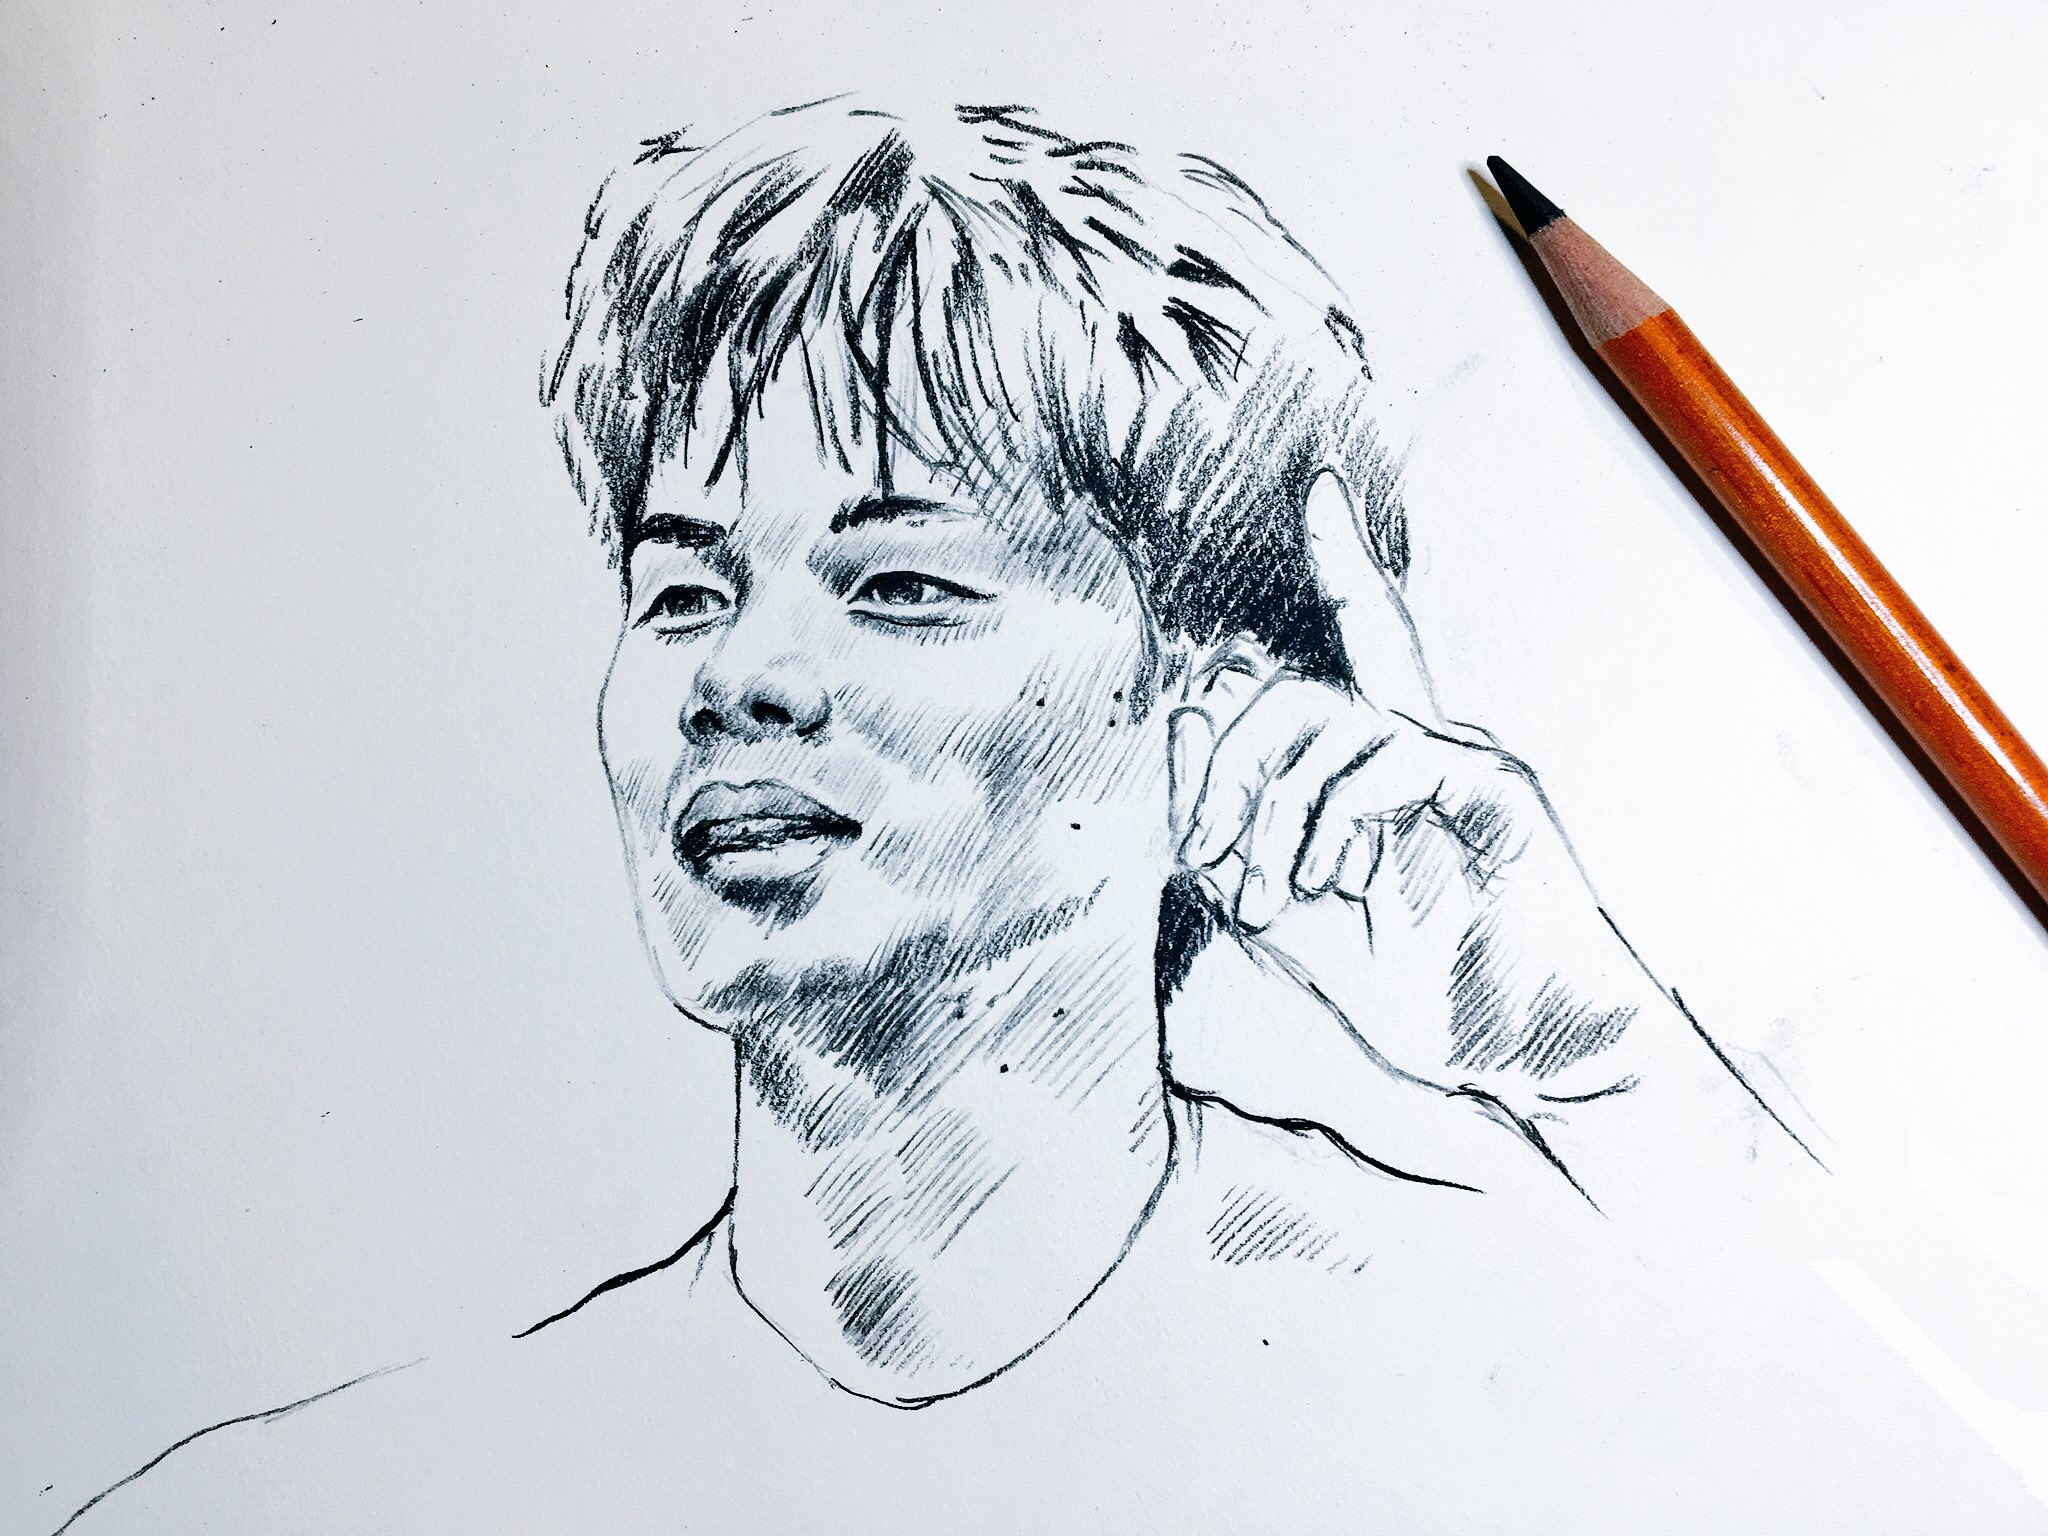 FootballAtlas_Sketch-1.jpg